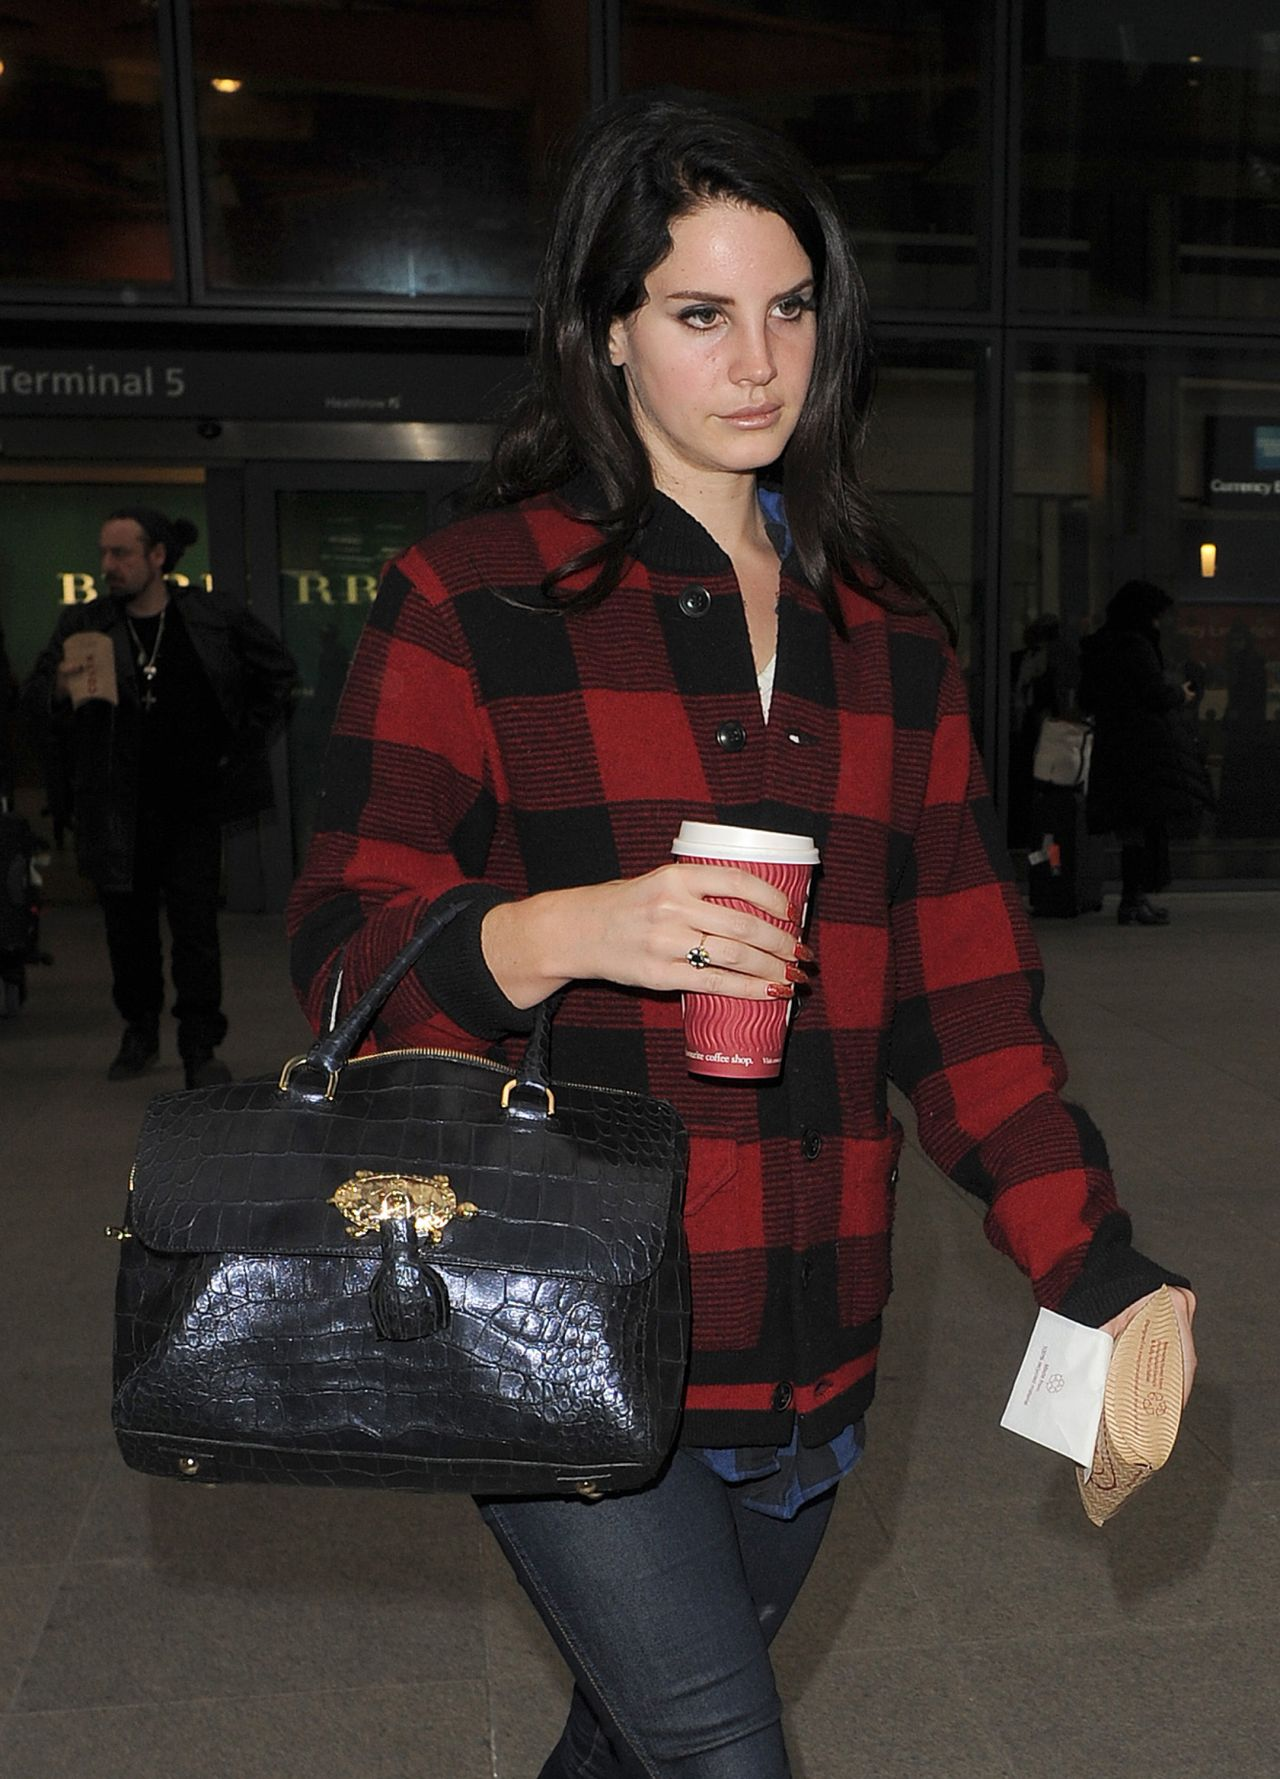 Lana Del Rey - Arriving at Heathrow Airport in London 1/5 ...